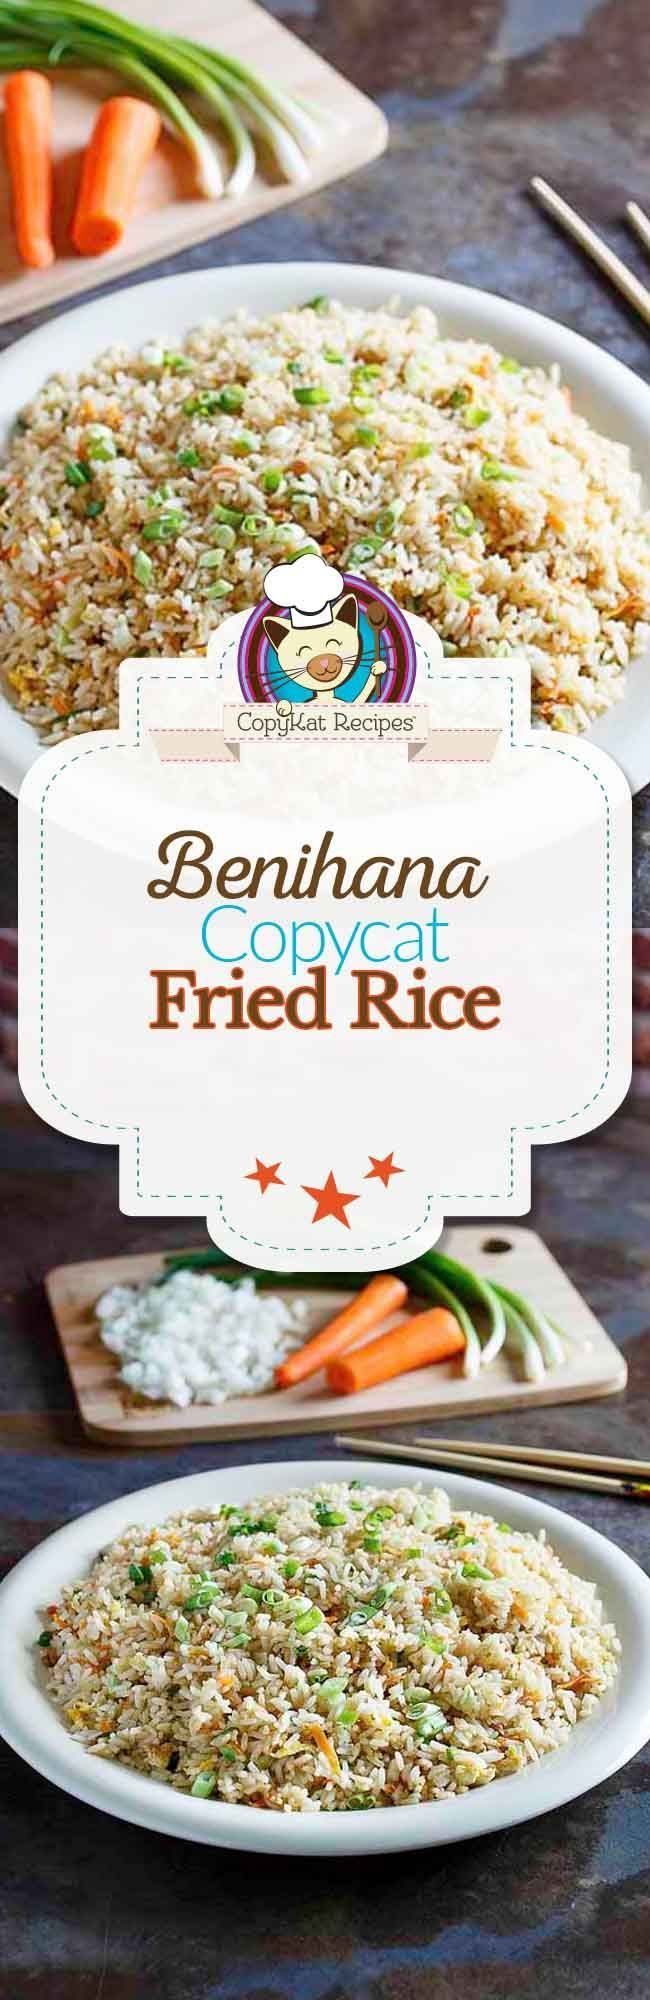 You can recreate Benihana Fried Rice at home with this copycat recipe.  These Step by Step instructions will have you making the perfect fried rice.